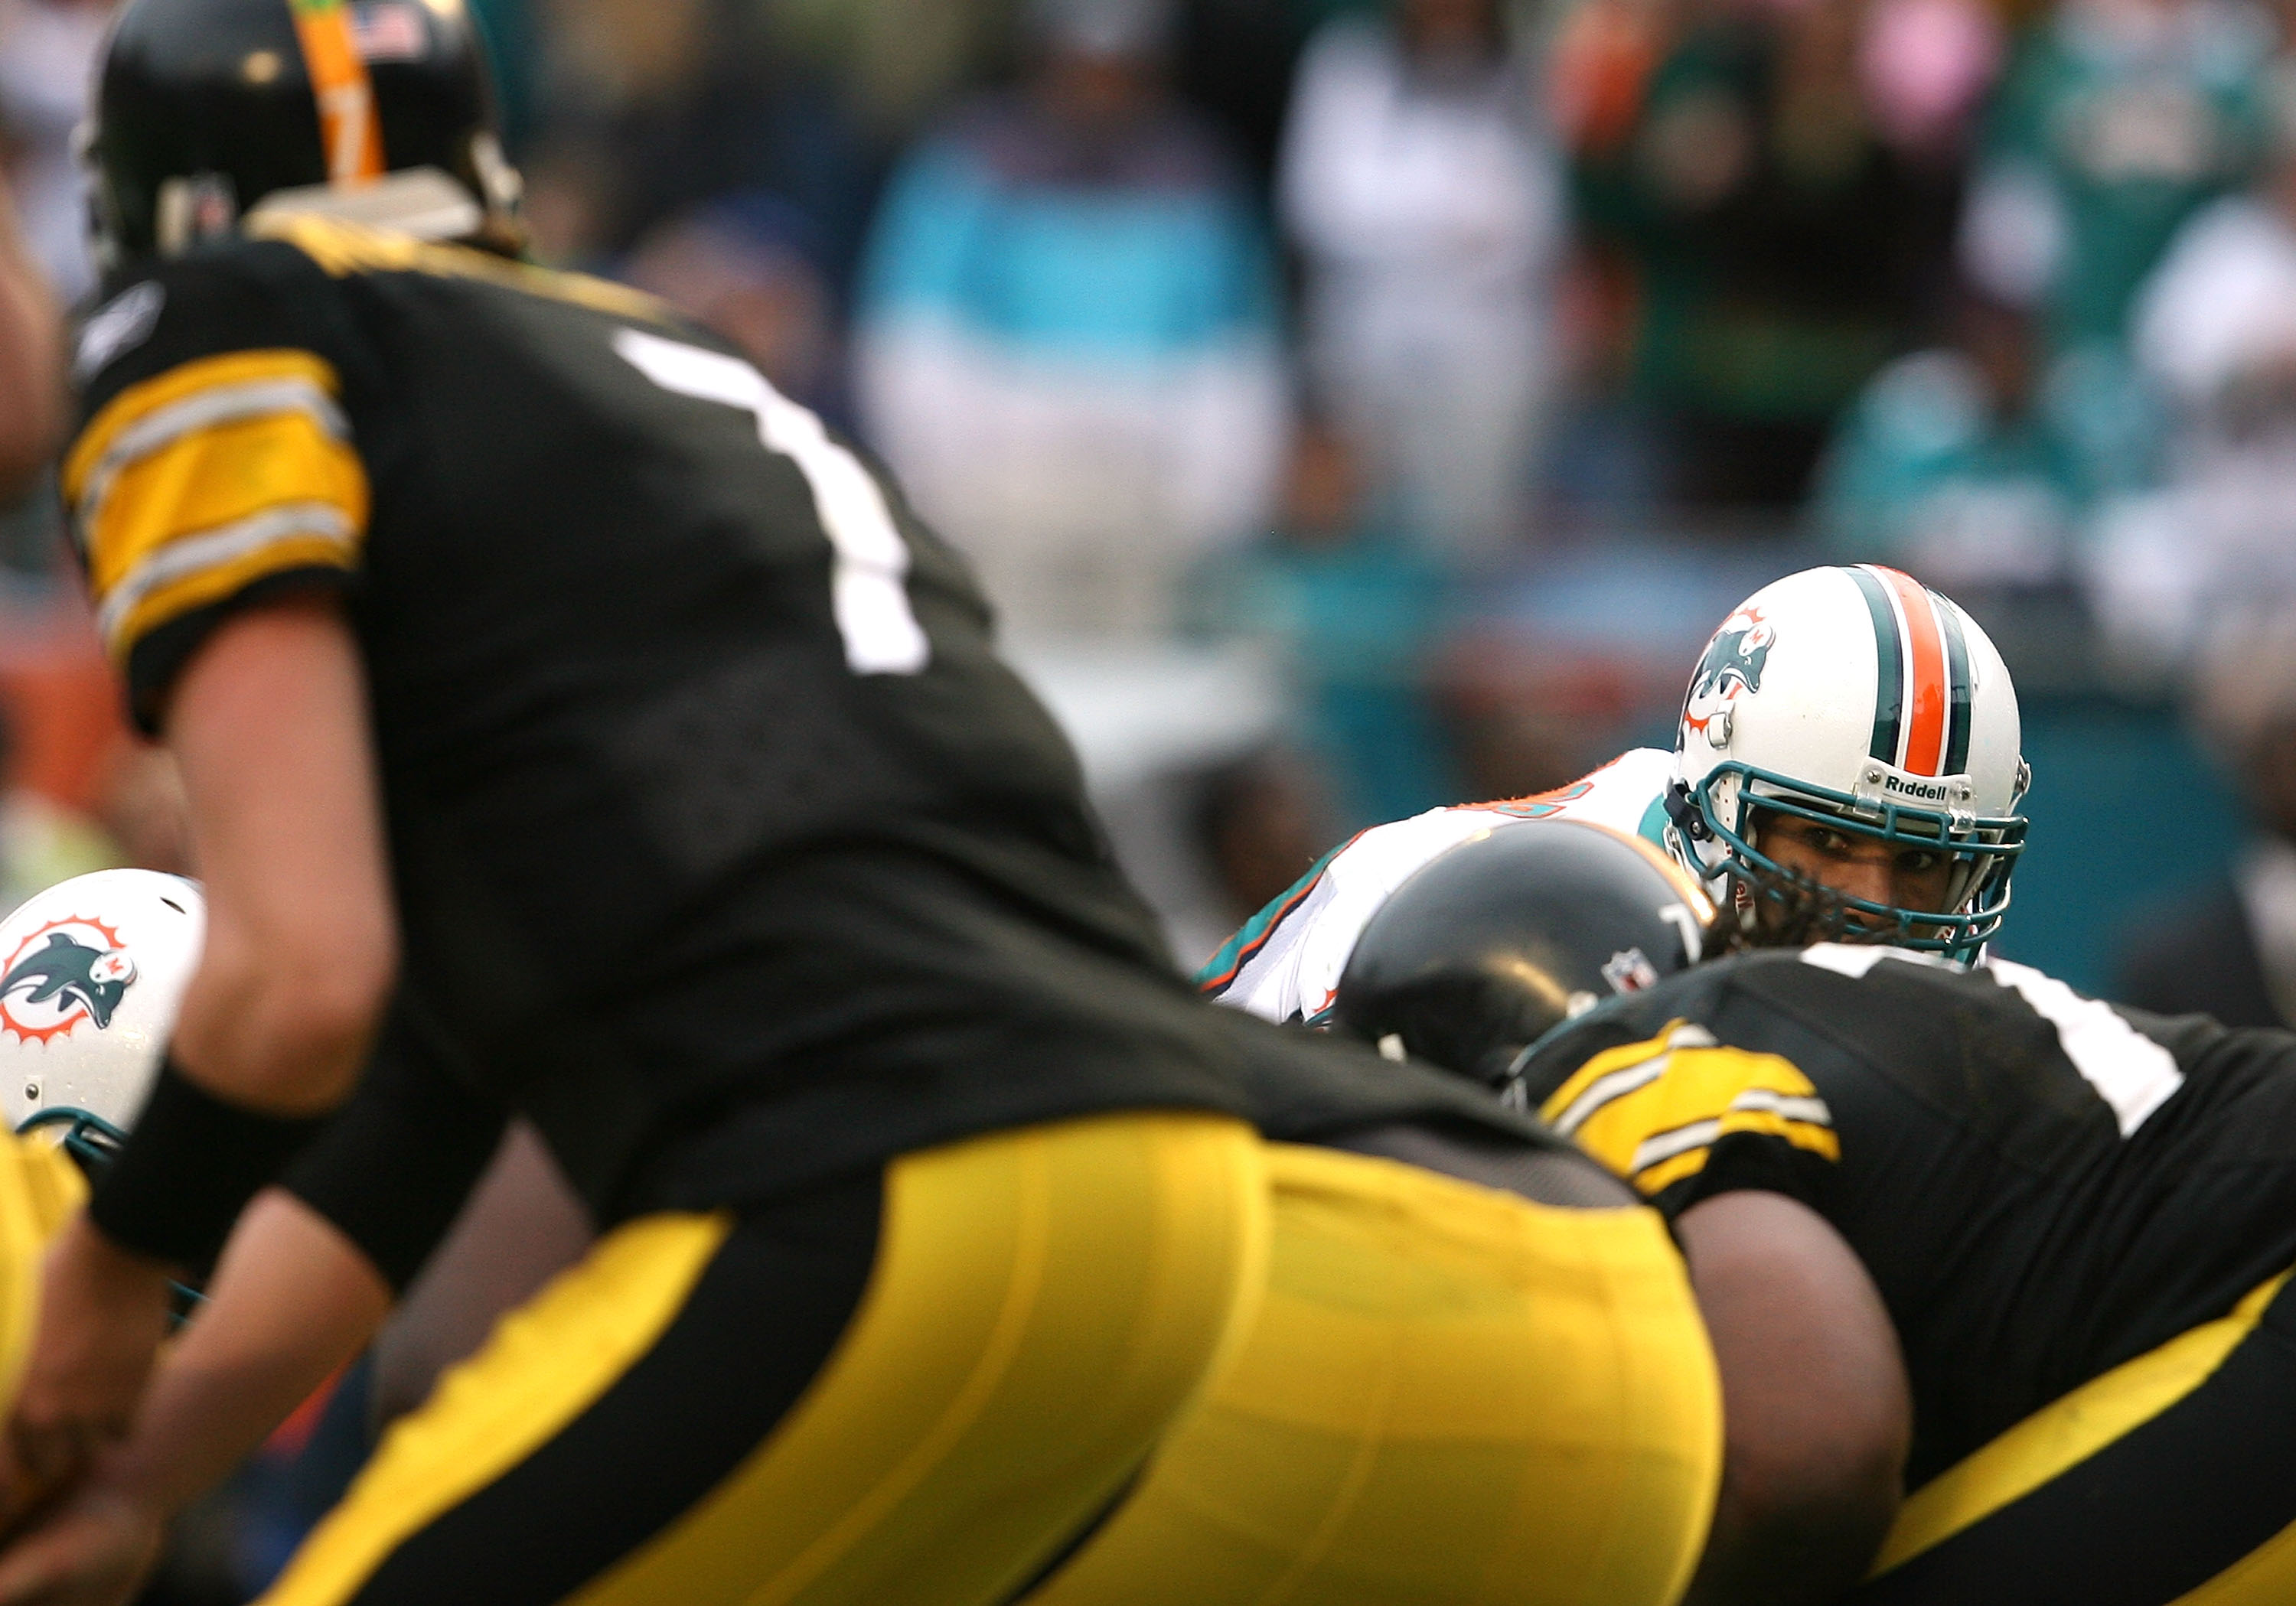 MIAMI - JANUARY 03:  Linebacker Jason Taylor #99 of the Miami Dolphins looks in as quarterback Ben Roethlisberger #7 of the Pittsburgh Steelers calls out a play at the line of scrimmage at Land Shark Stadium on January 3, 2010 in Miami, Florida. The Steel